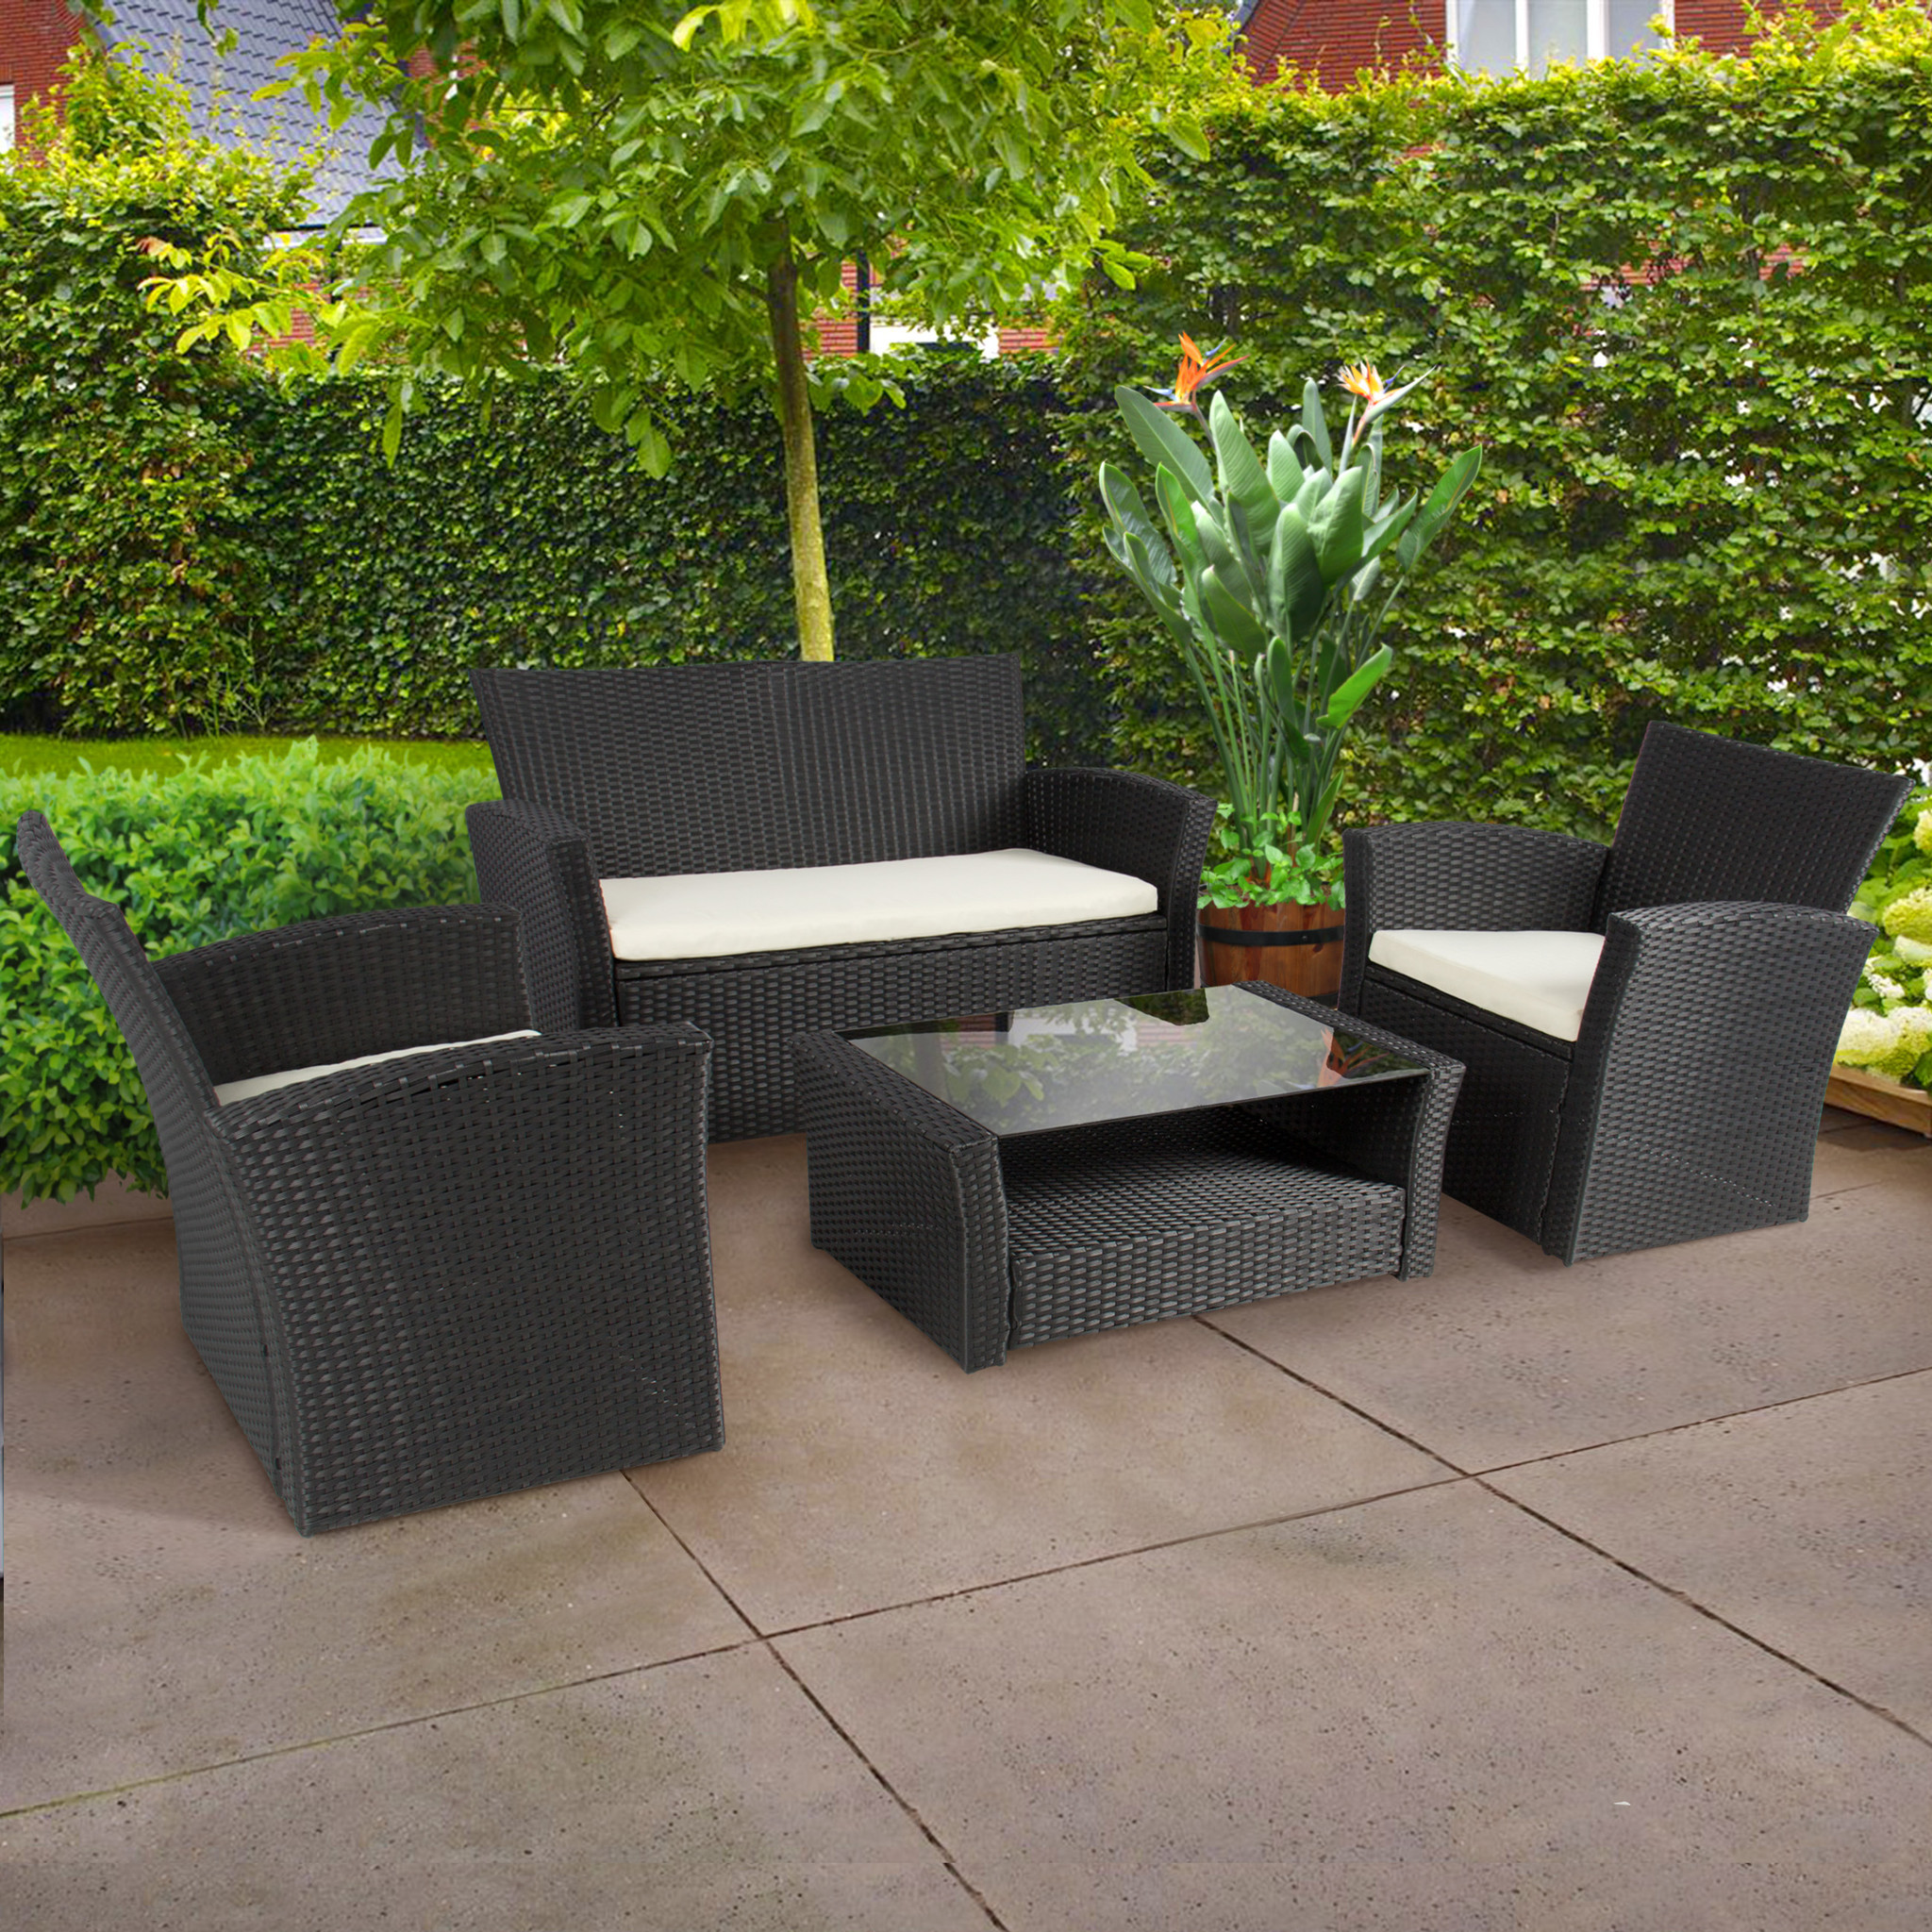 How to select the best quality patio furniture for your for Outdoor furniture images